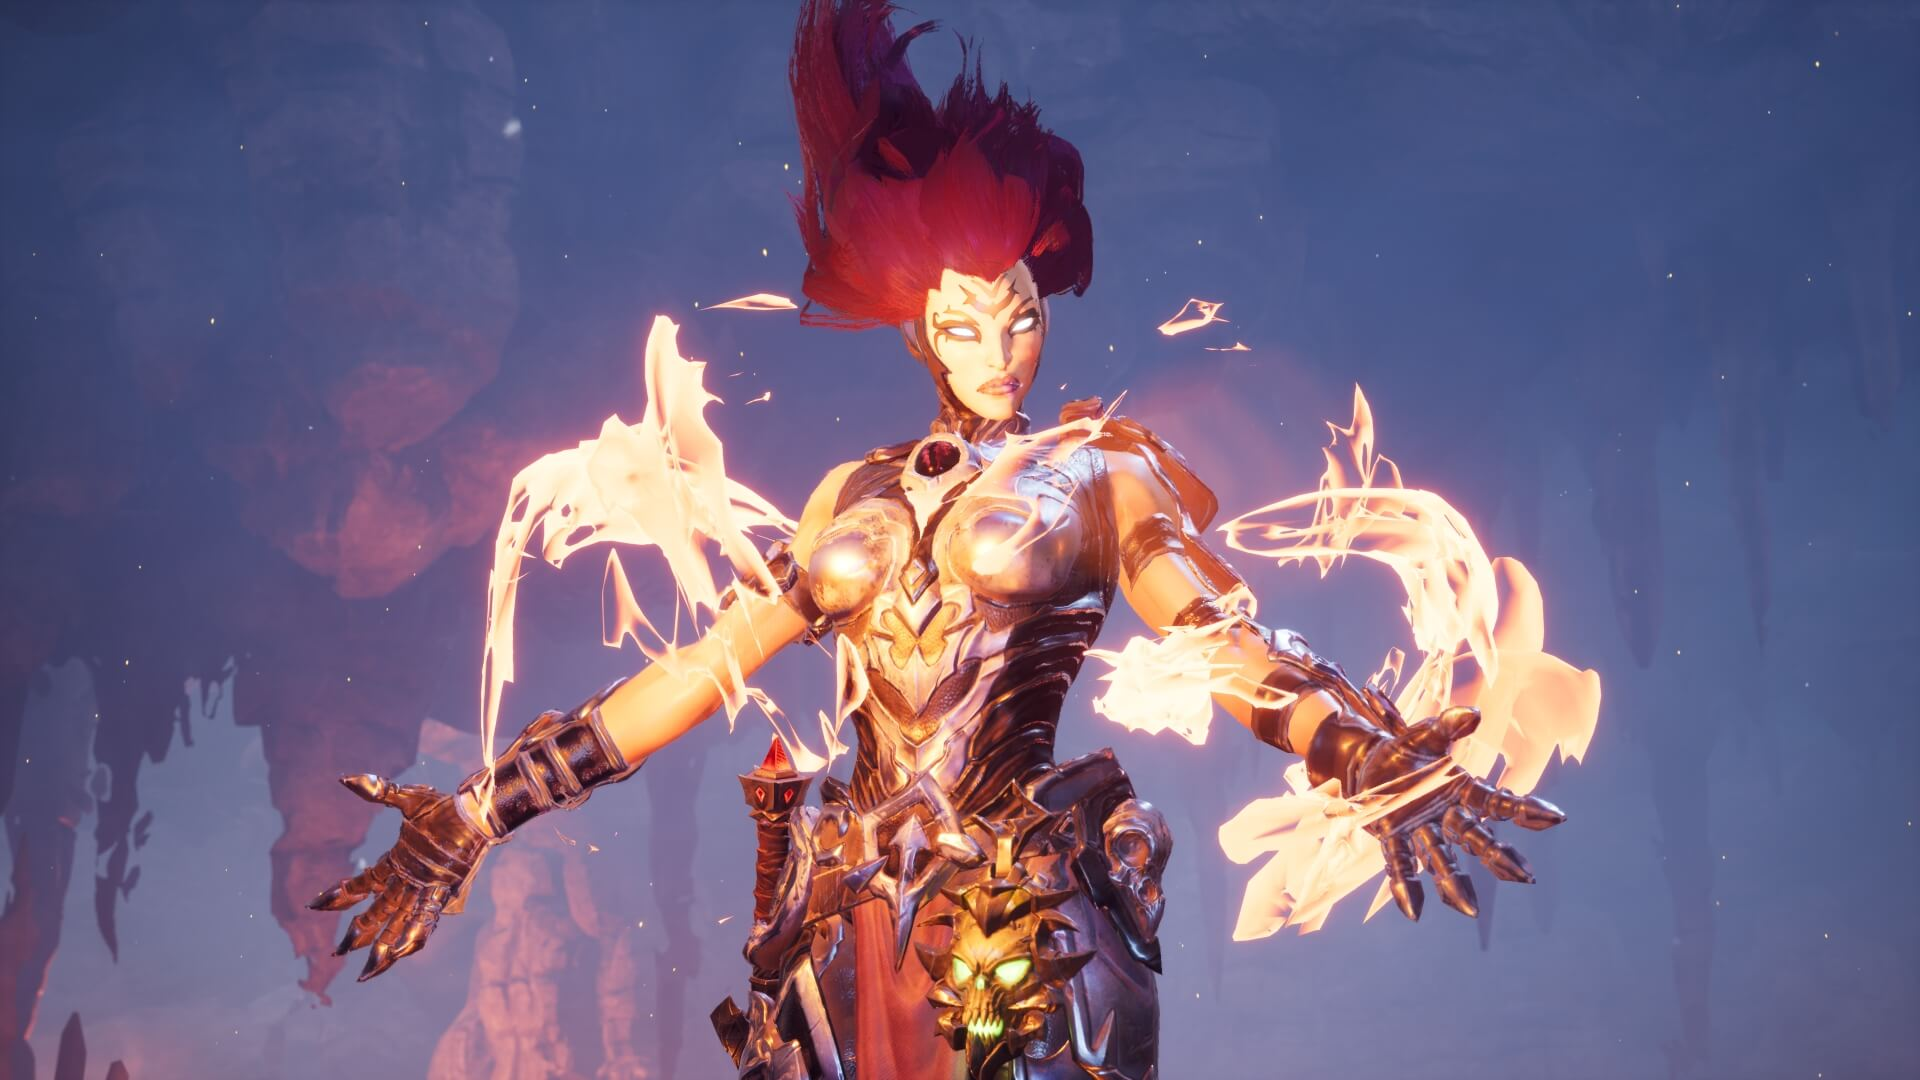 Darksiders III - Official Website